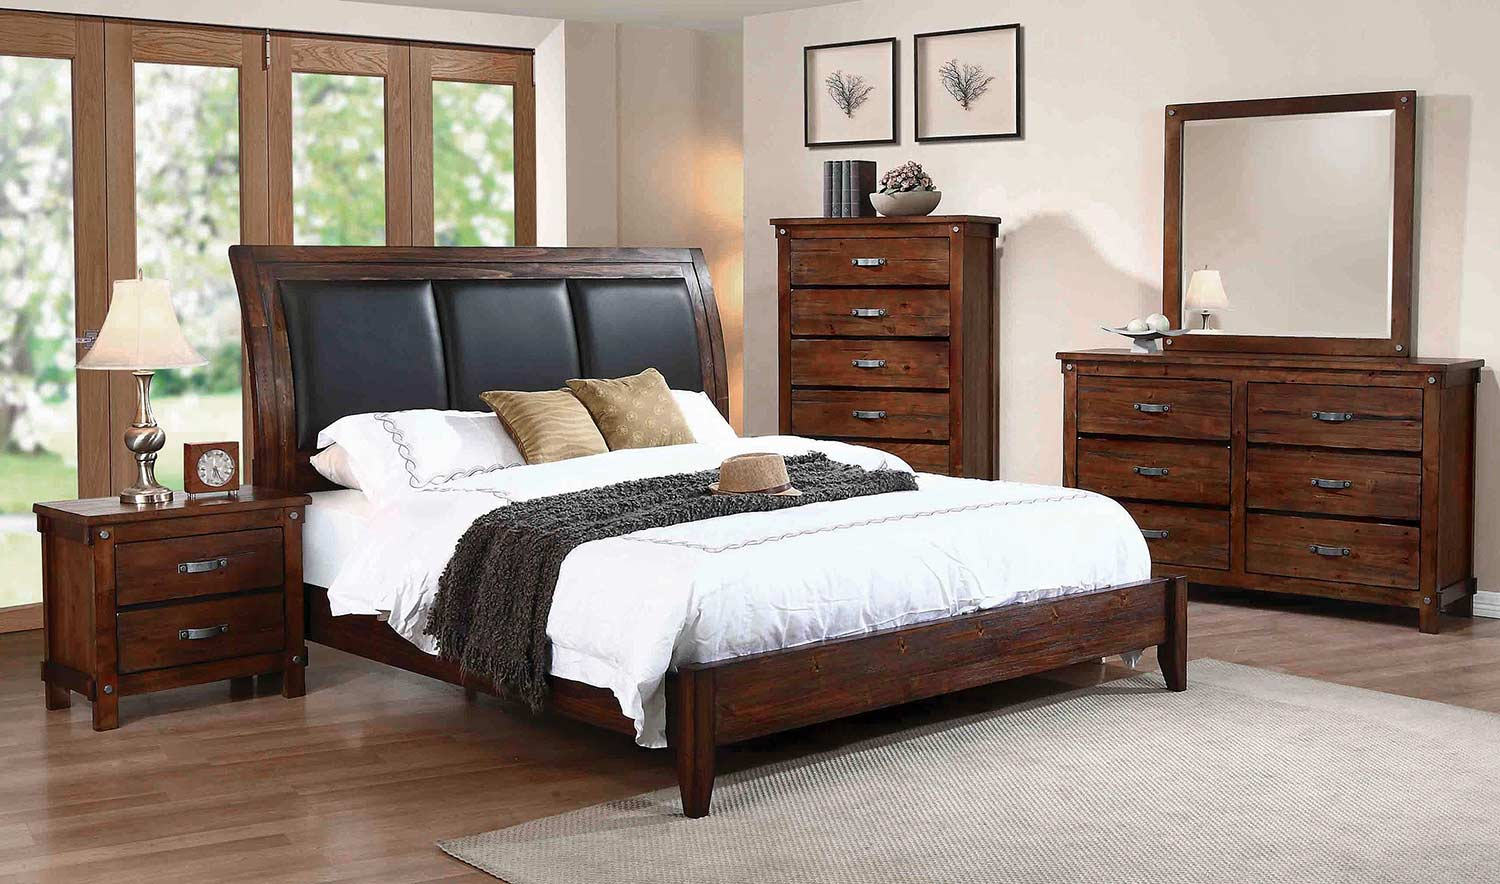 Coaster Noble Upholstered Low Profile Sleigh Bedroom Set - Rustic Oak